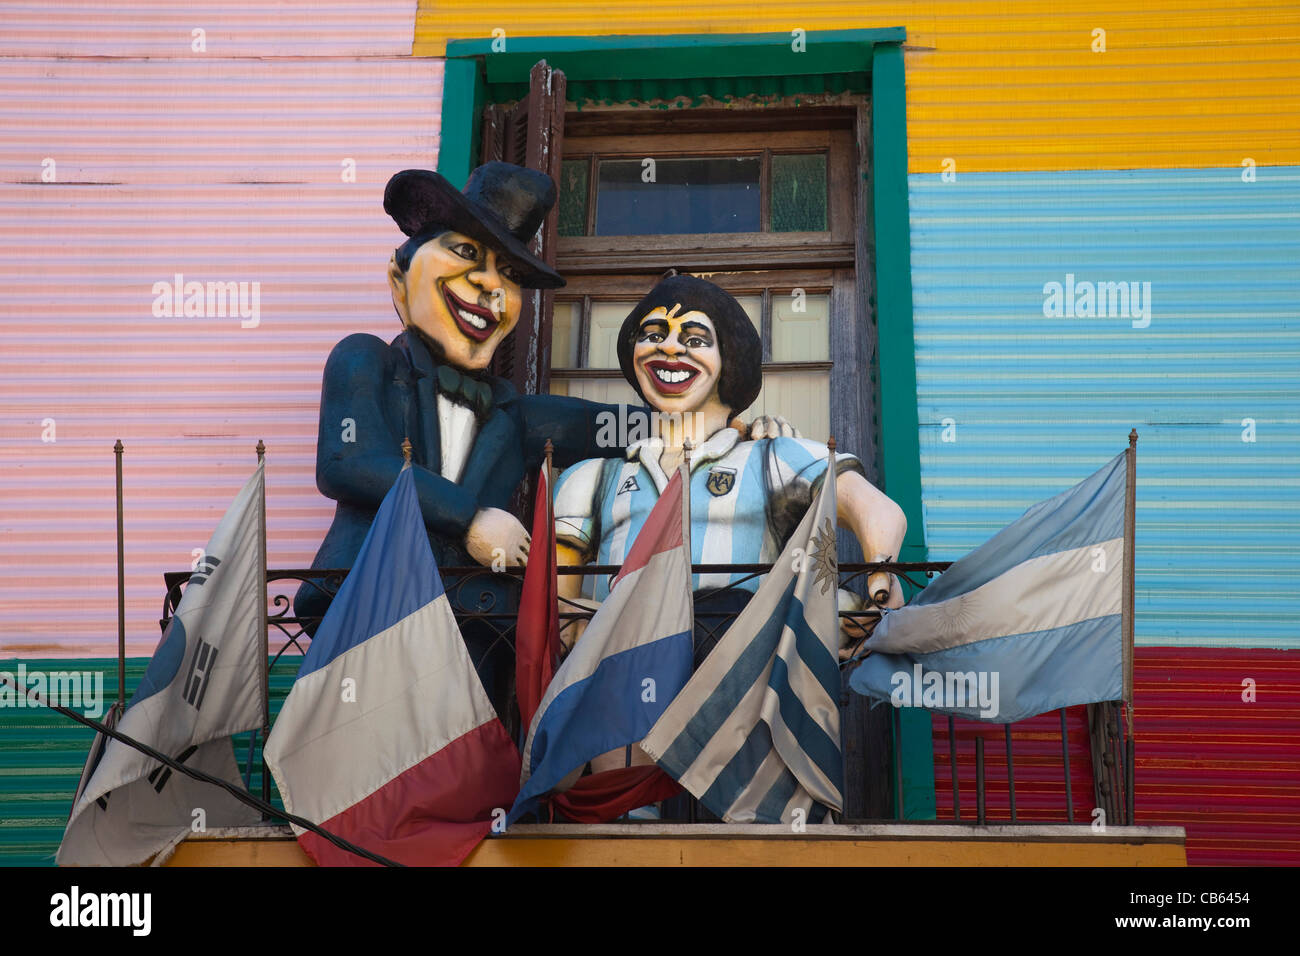 Large figure of Diego Maradona on a balcony in the colourful La Boca neighbourhood of Buenos Aires, Argentina - Stock Image